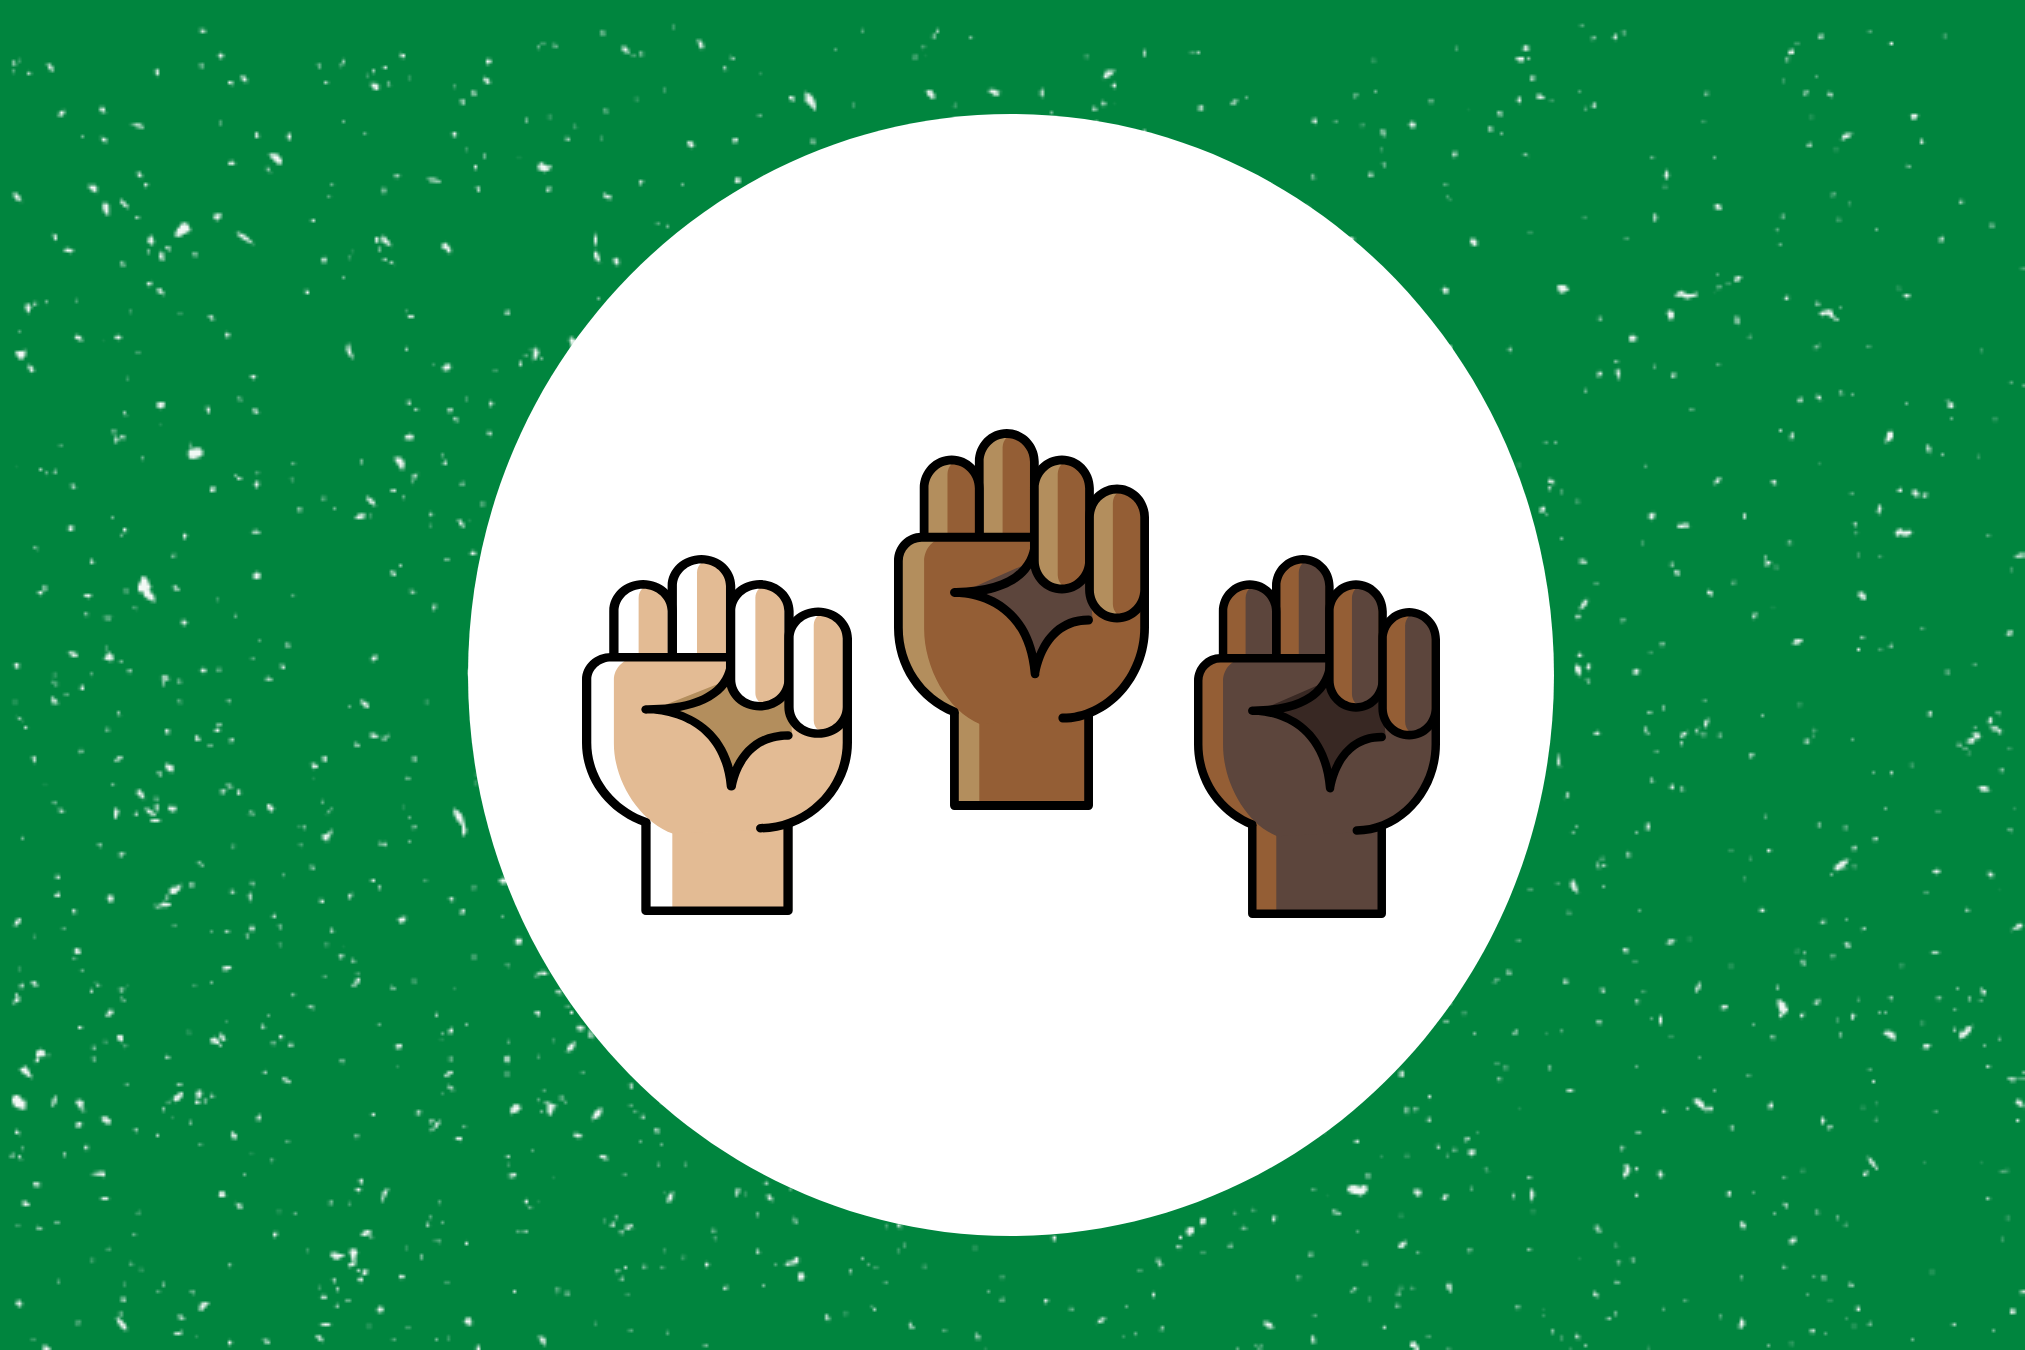 three fists of varying skin colors raised in protest and solidarity on a green background